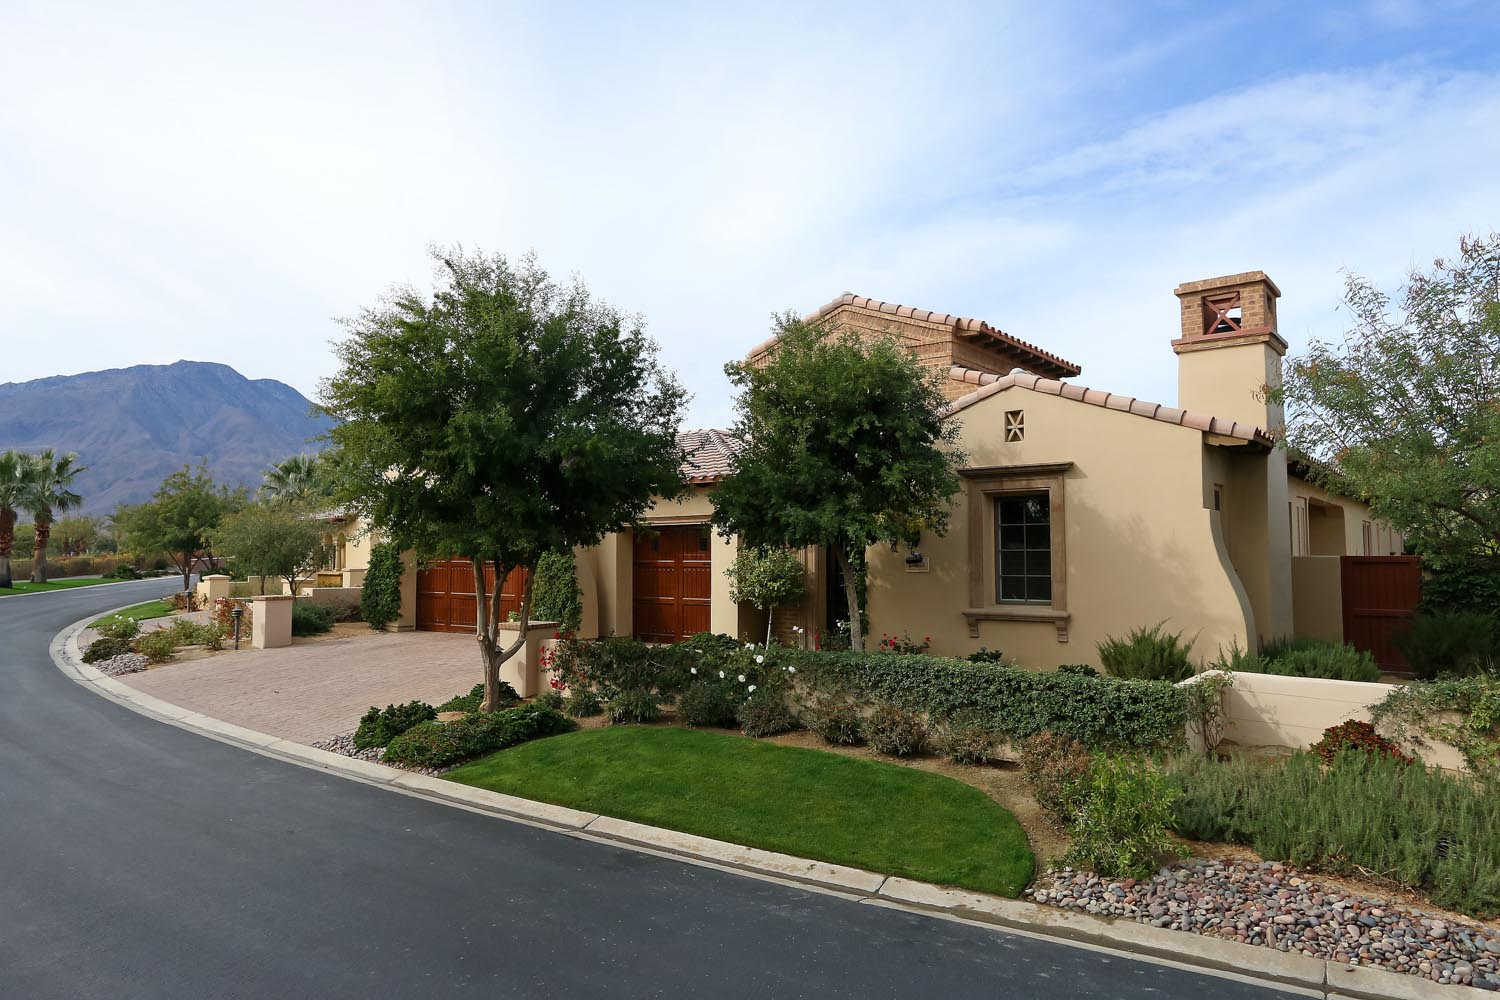 Home for Sale - La Quinta Area